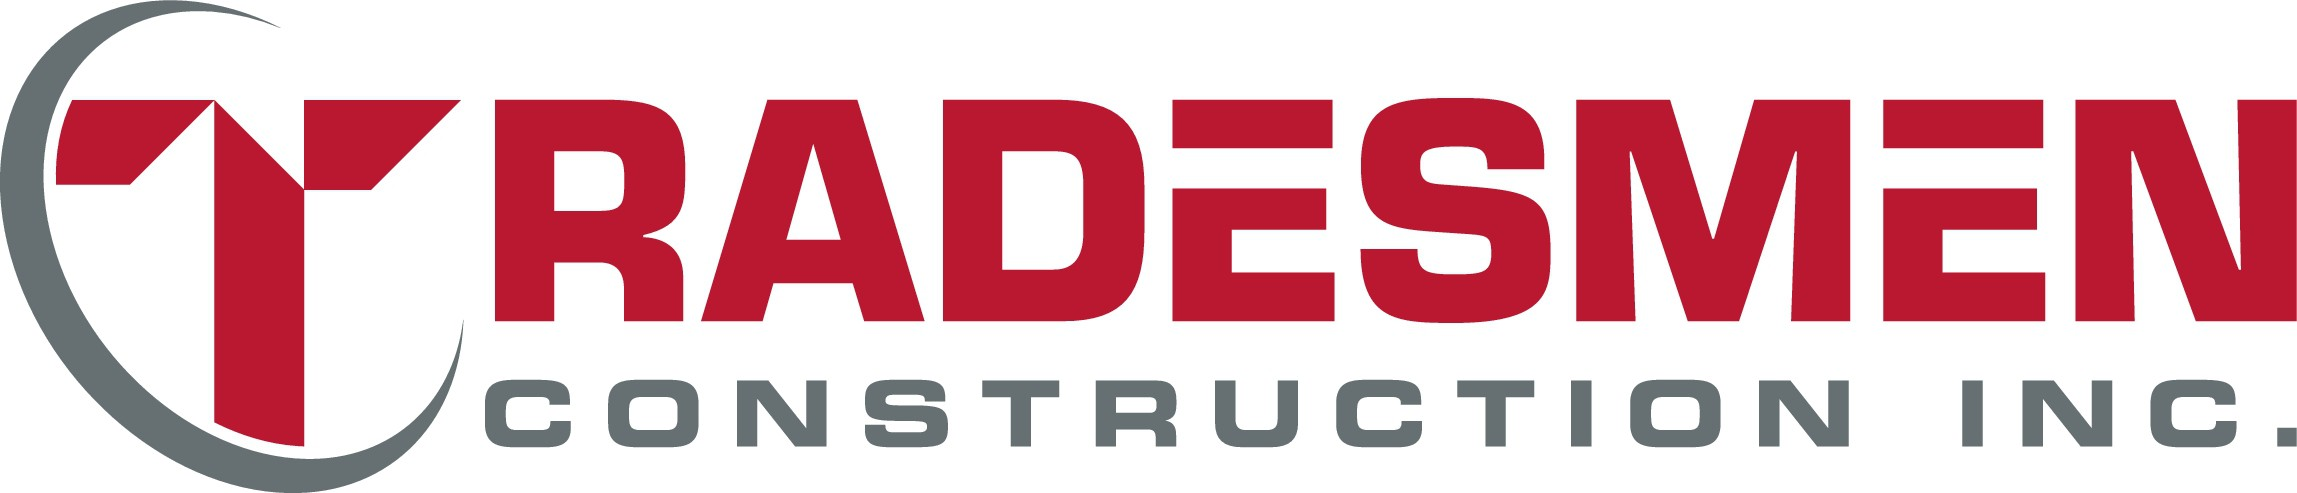 Create a powerful and corporate design for Tradesmen Construction Inc.